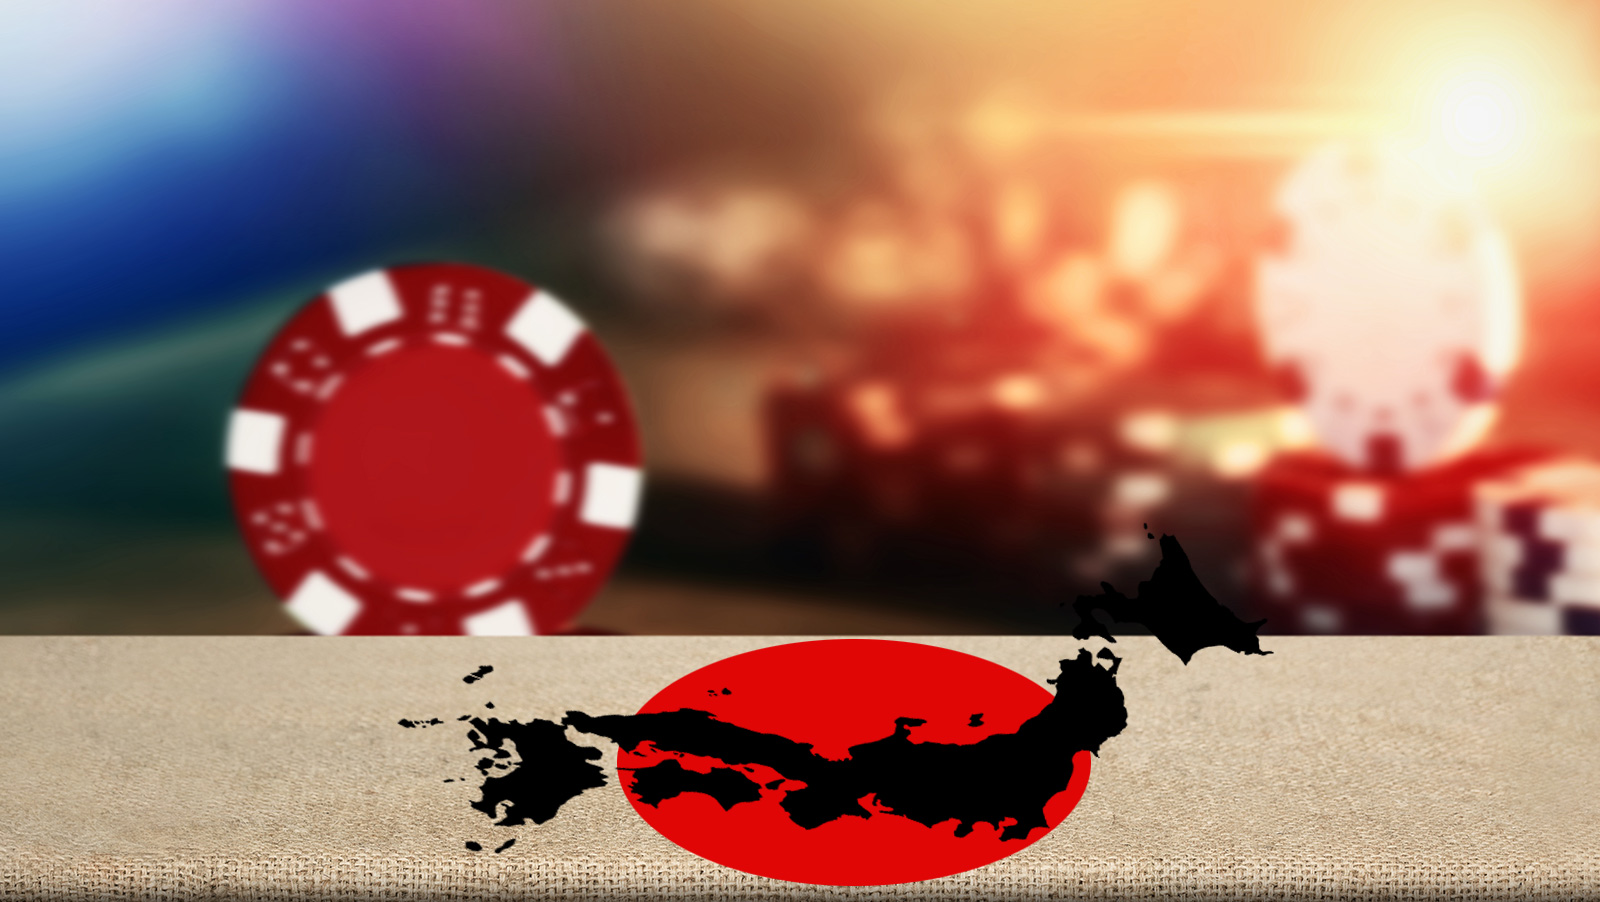 Japan's casinos unlikely to draw Chinese players: experts